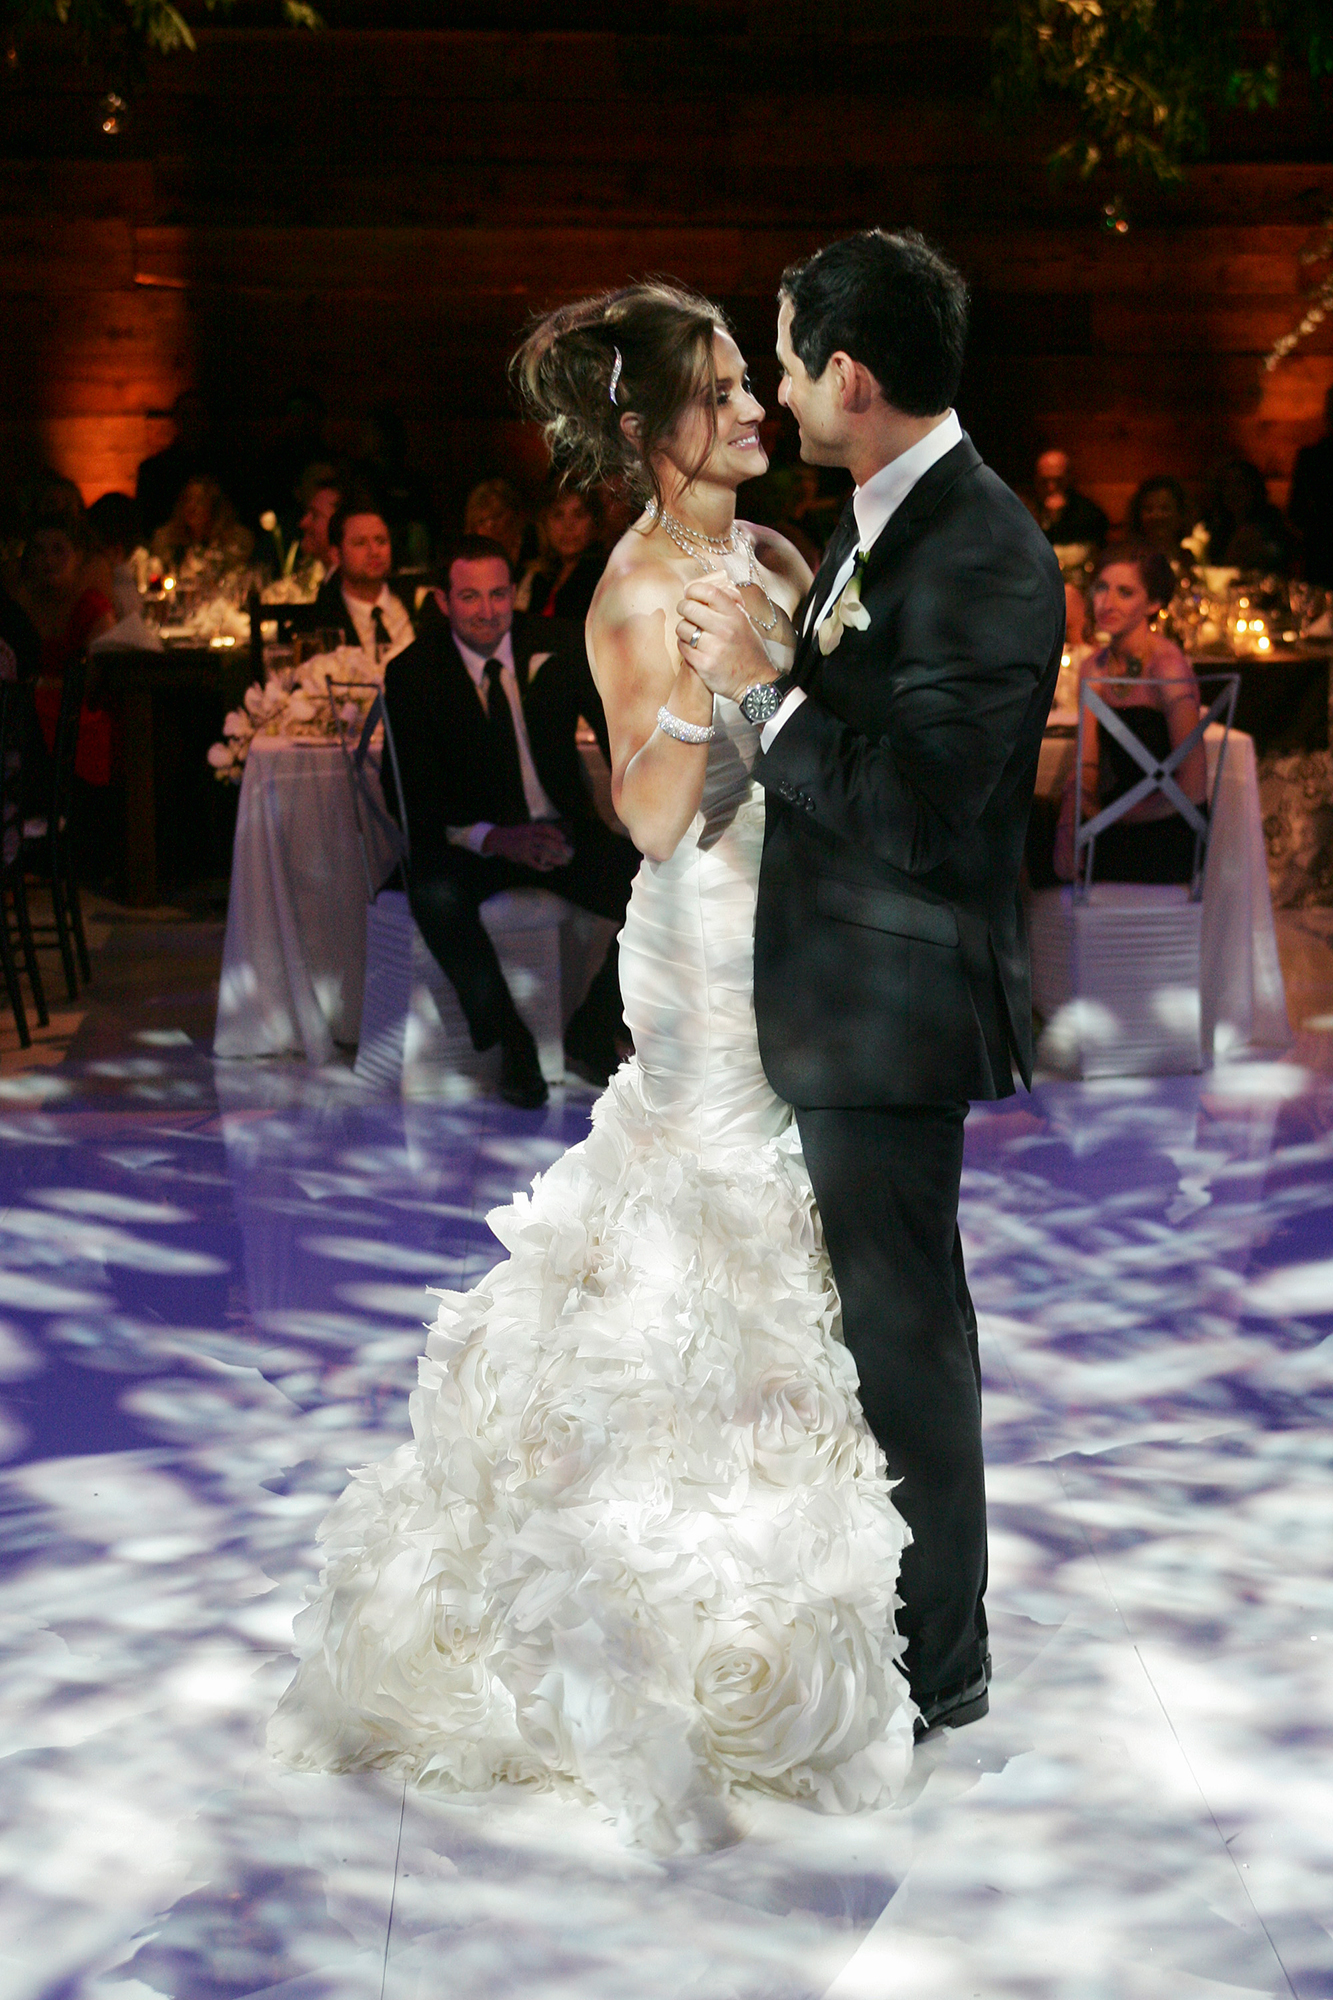 Every Bachelor Nation Couple That Has Tied the Knot - Mesnick broke up with his season's winner, Melissa Rycroft , in March 2009 to pursue runner-up Malaney. They married in February 2010 and share daughter, Riley.